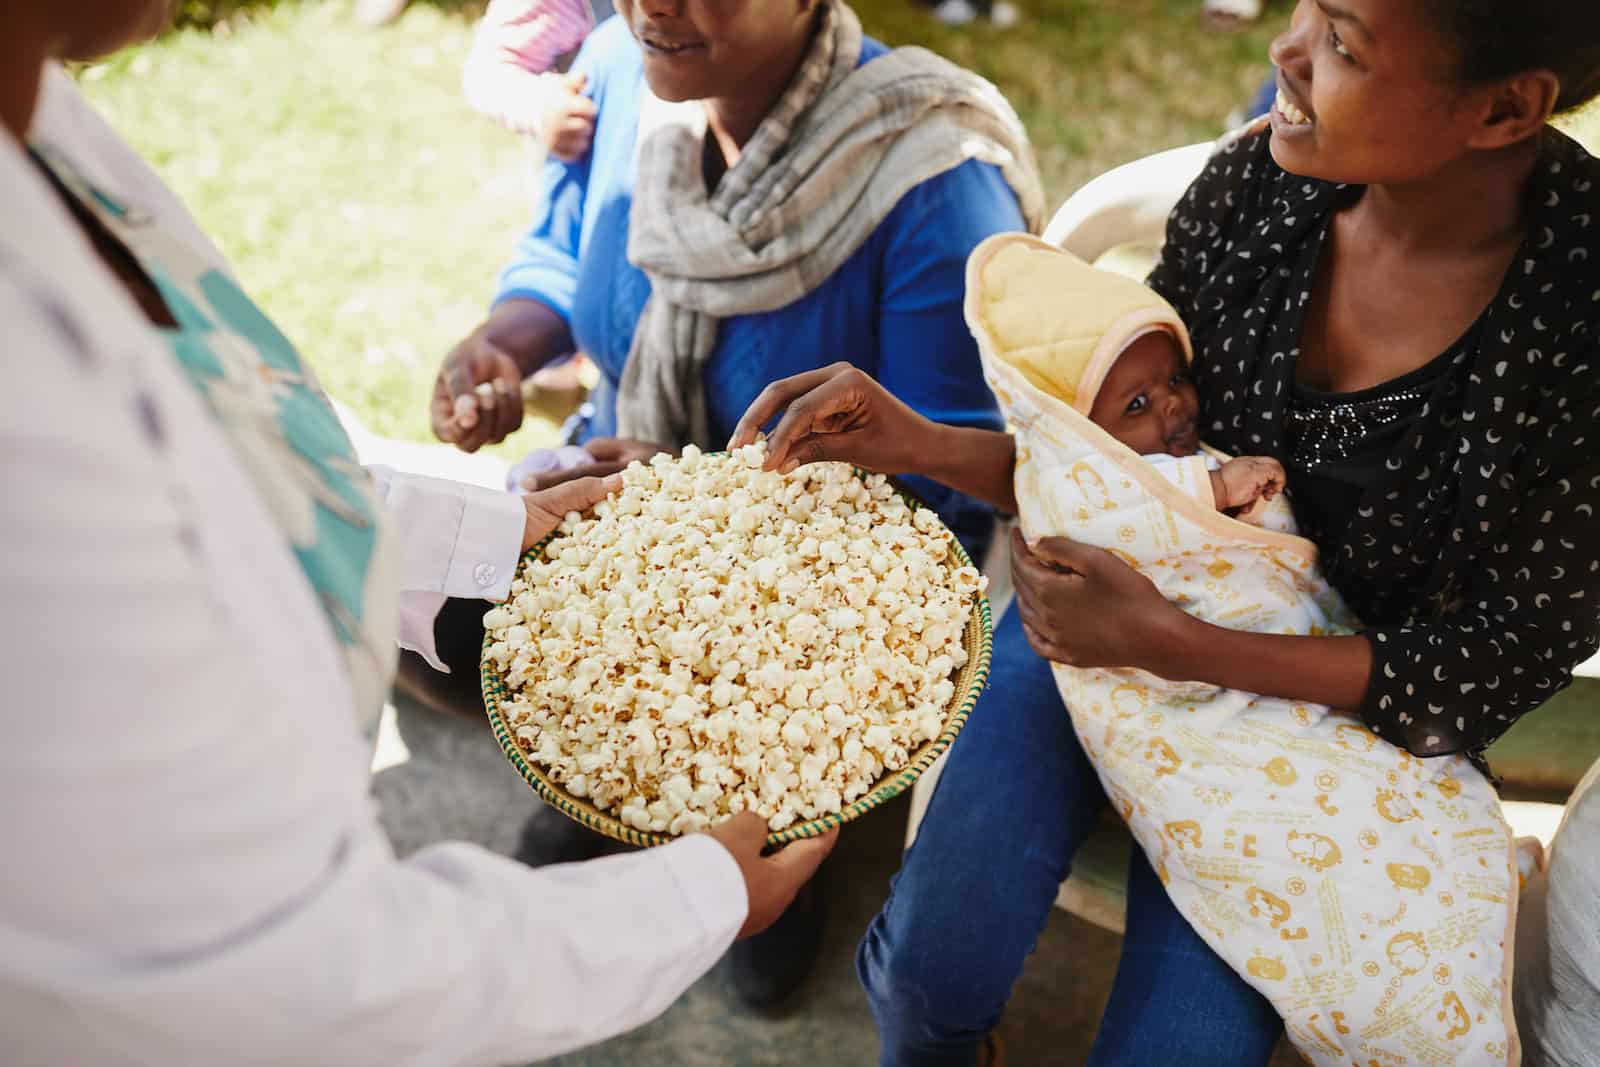 A woman holding a baby is offered a bowl of popcorn.